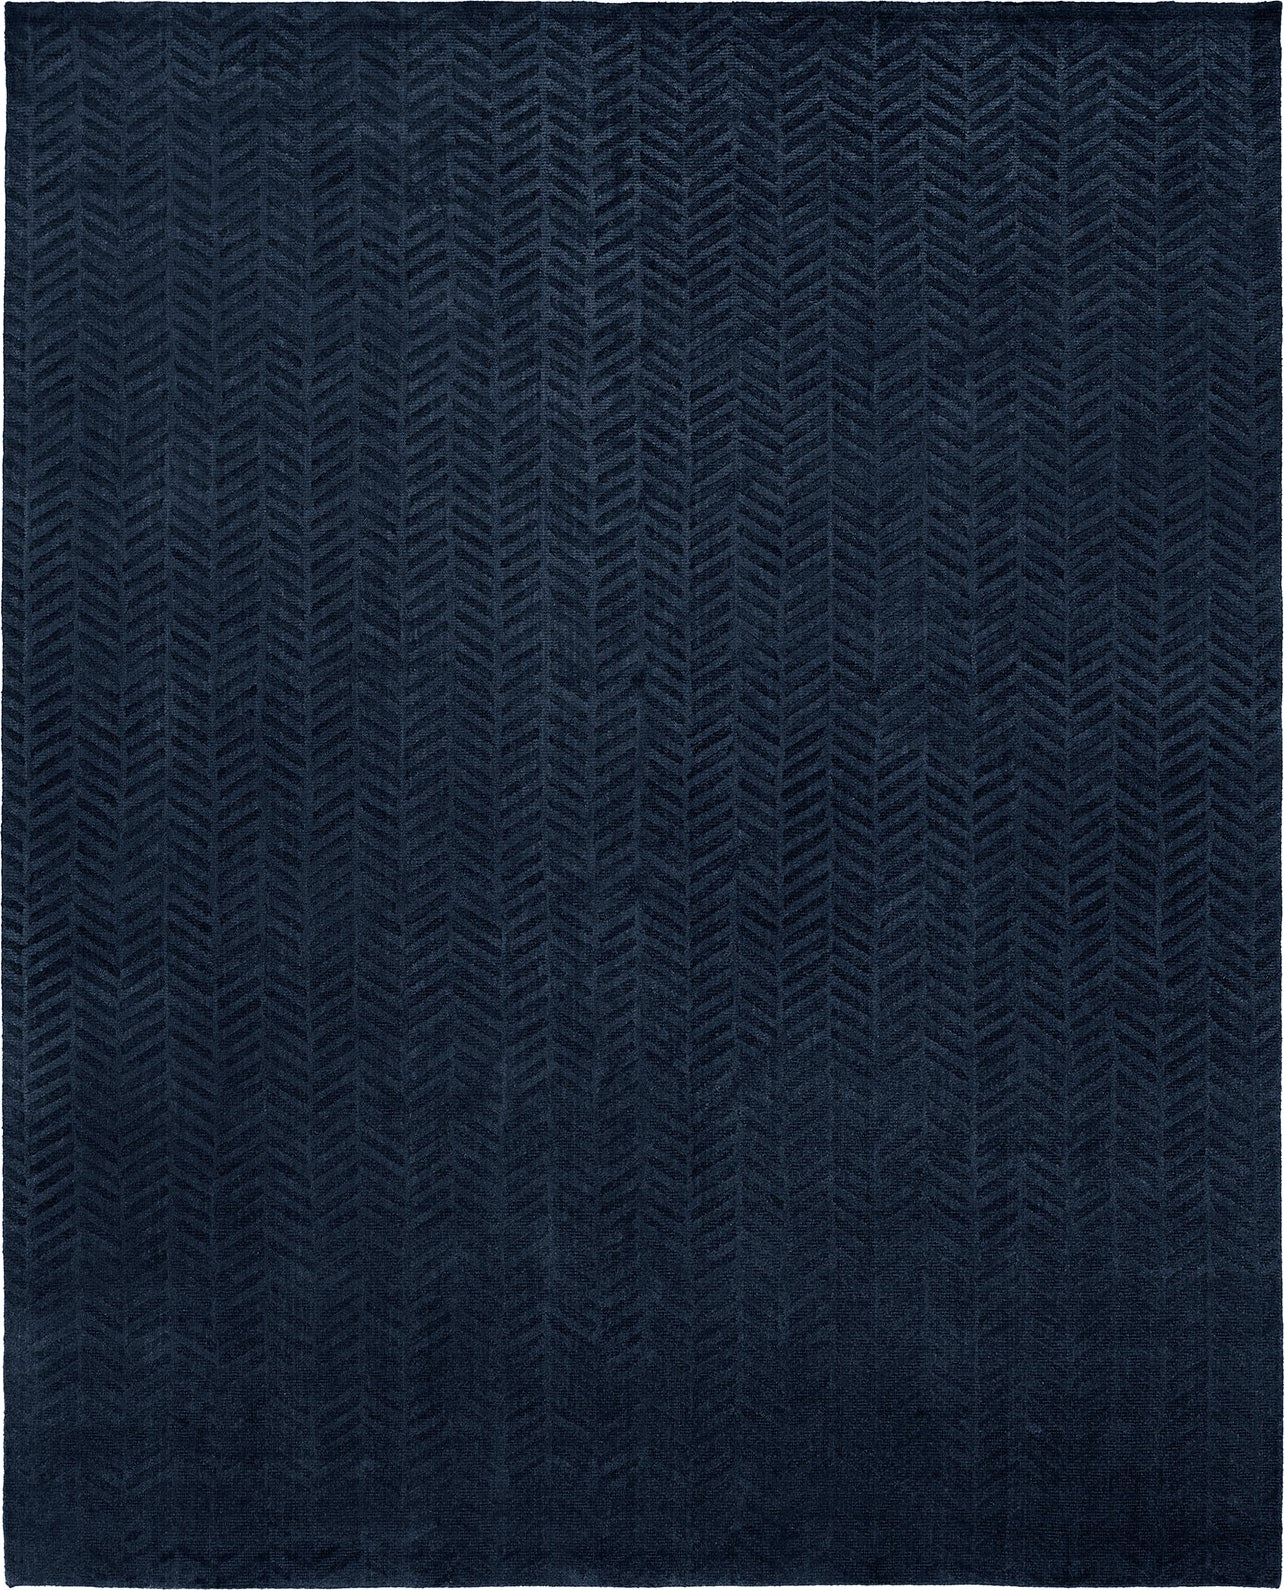 Kalaty Avalon AV-198 Midnight Blue Area Rug main image